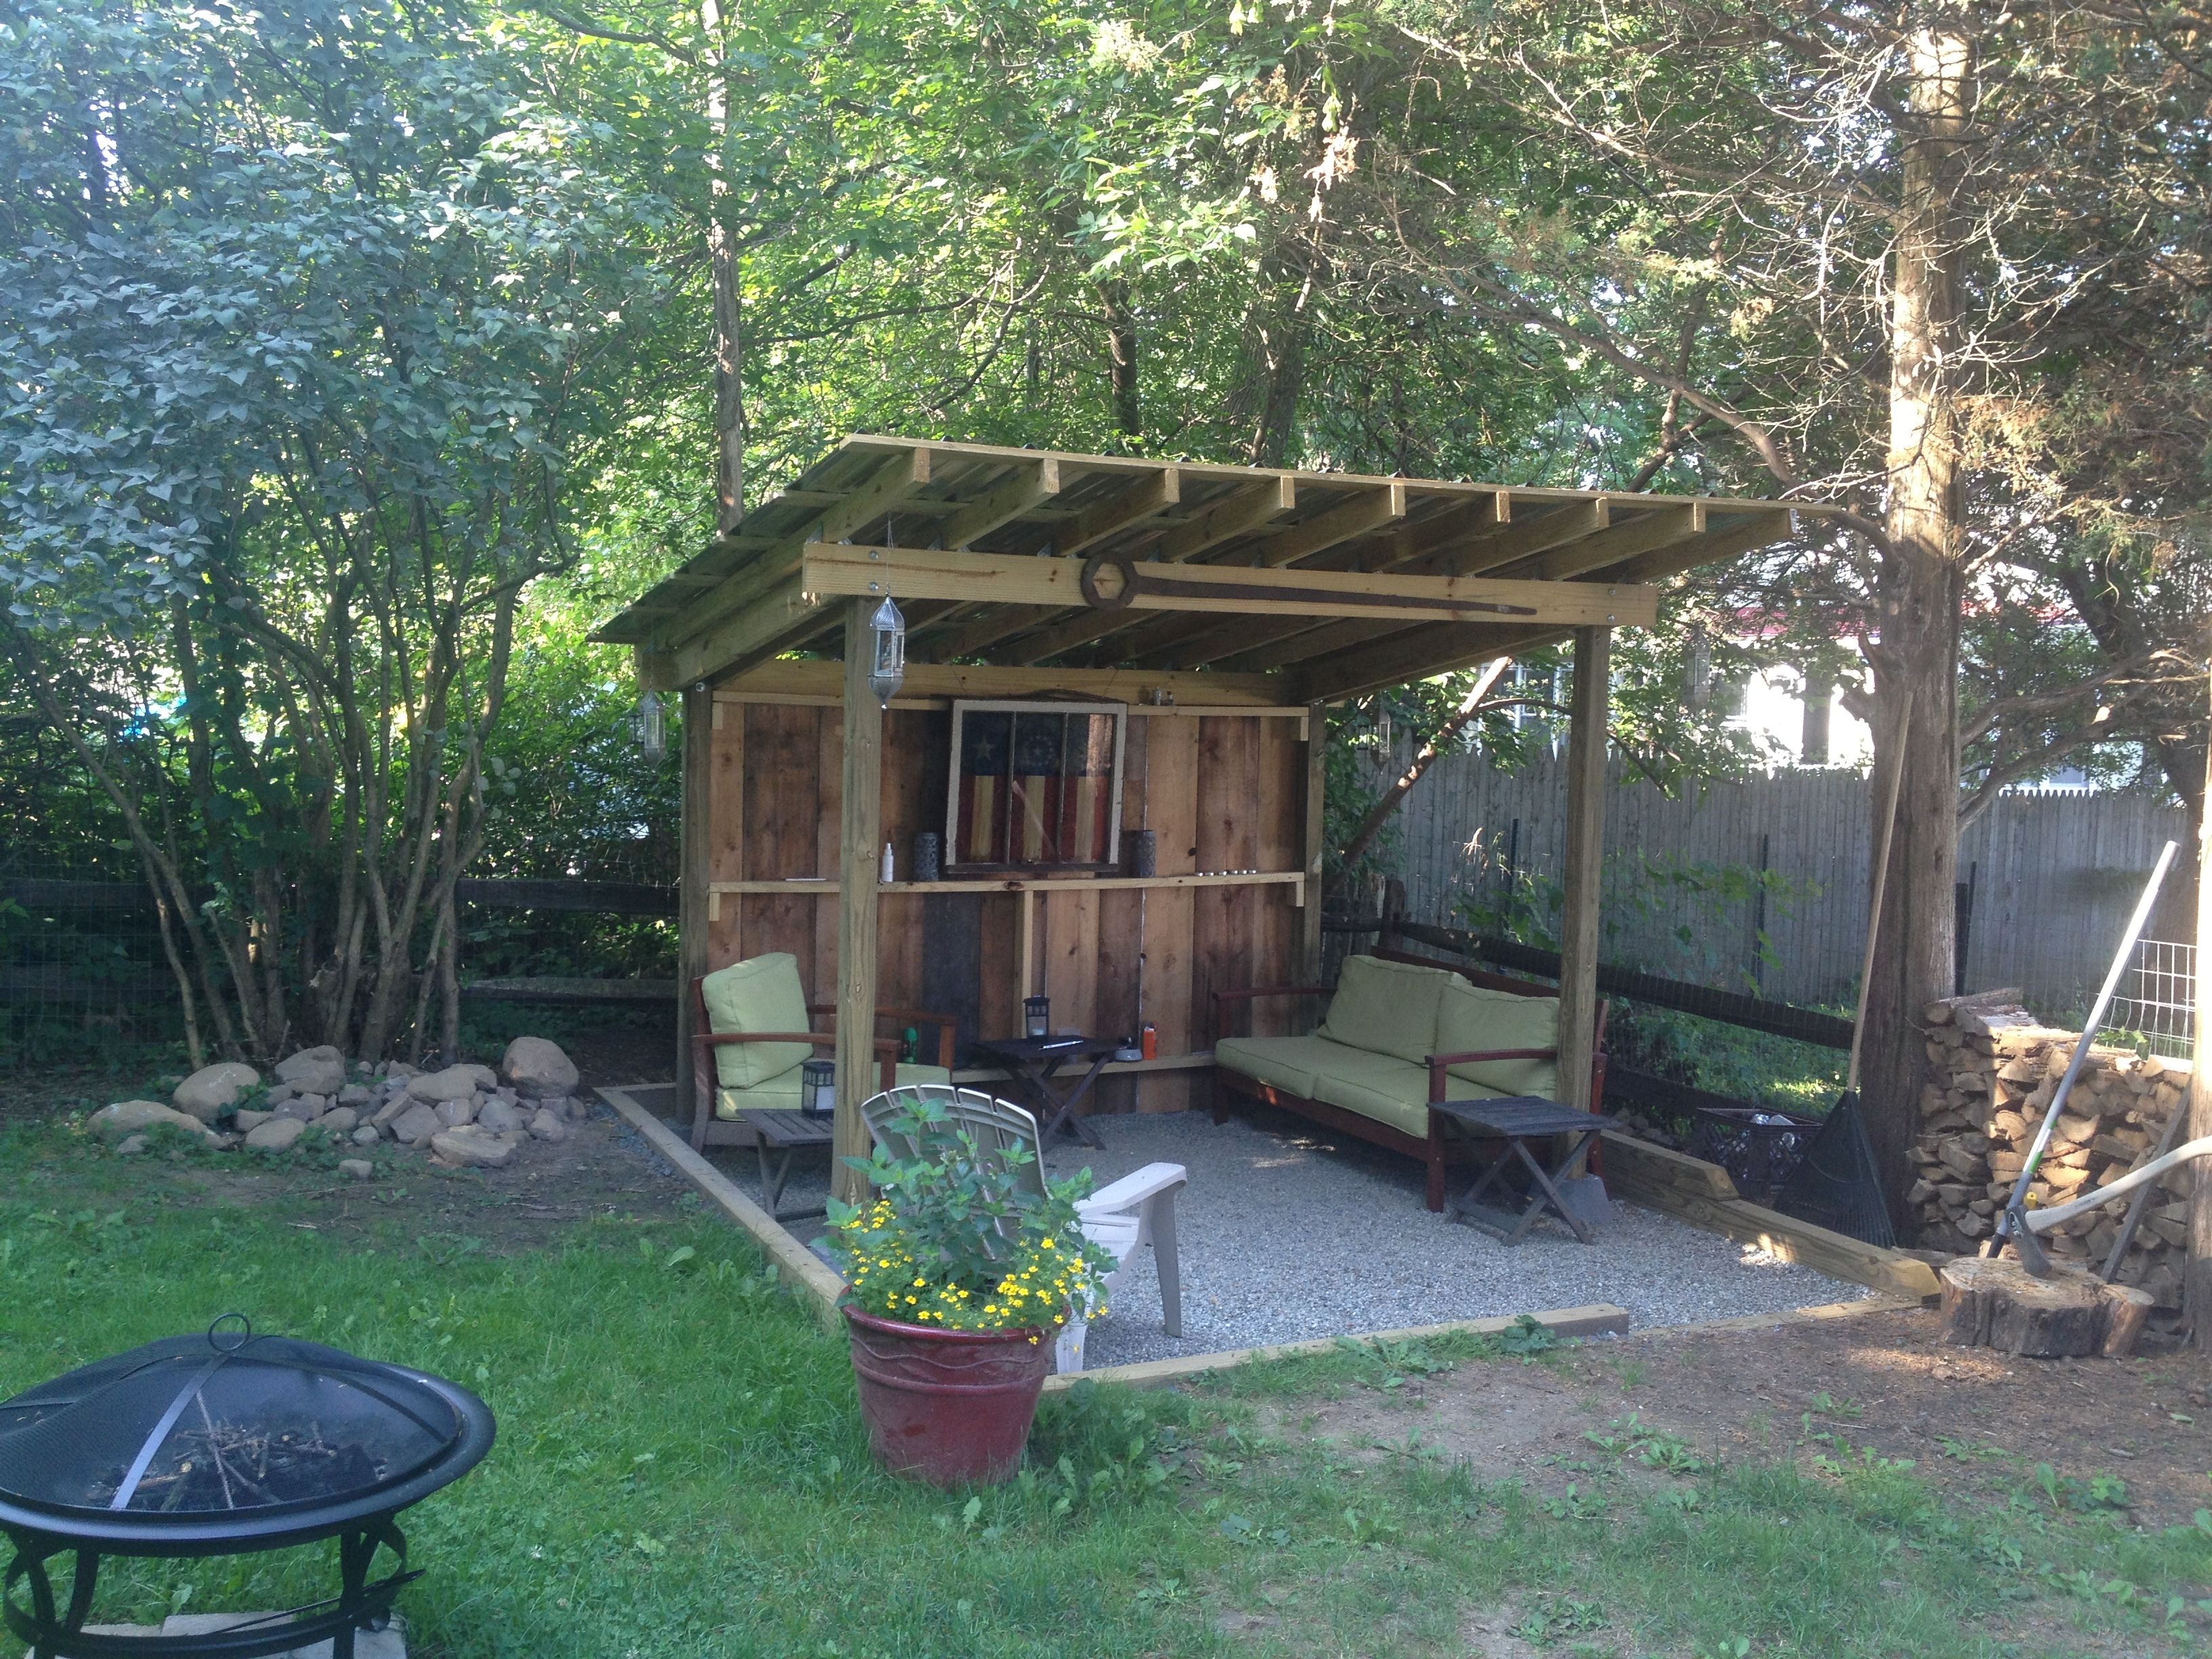 backyard bbq shack completed was supposed to cover my smoker but